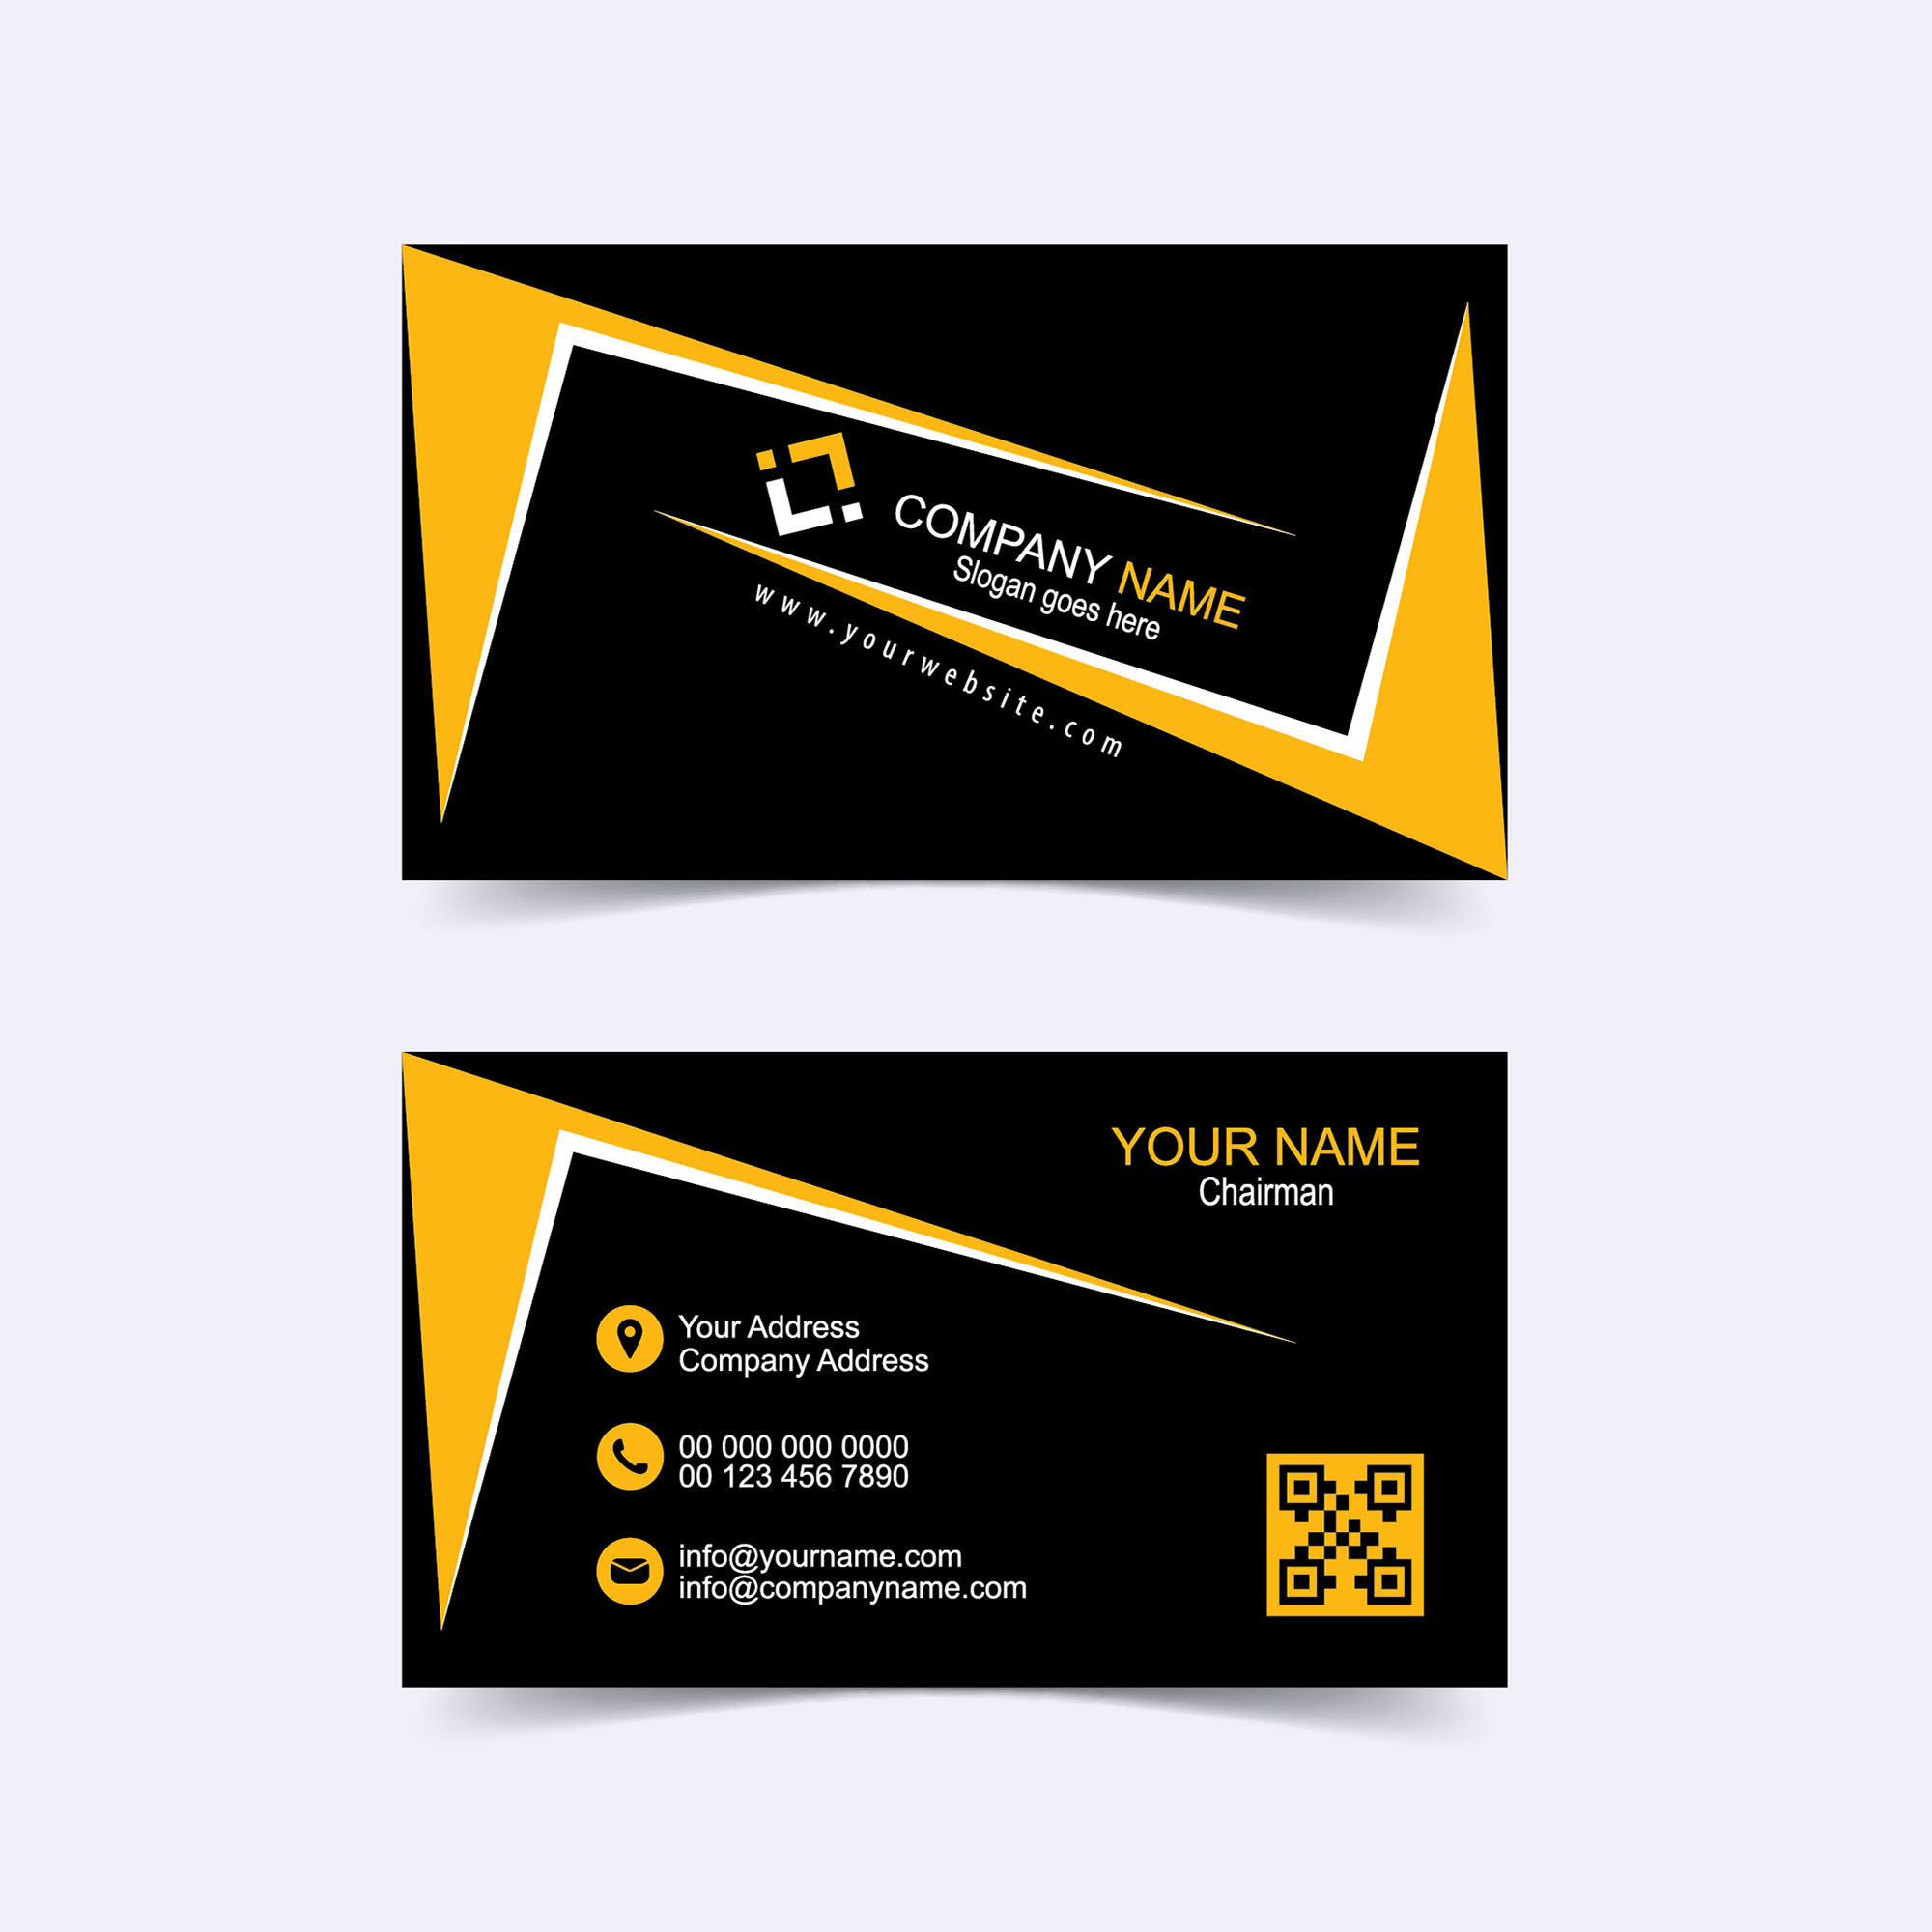 Modern business card template vector free download wisxi business card business cards business card design business card template design templates colourmoves